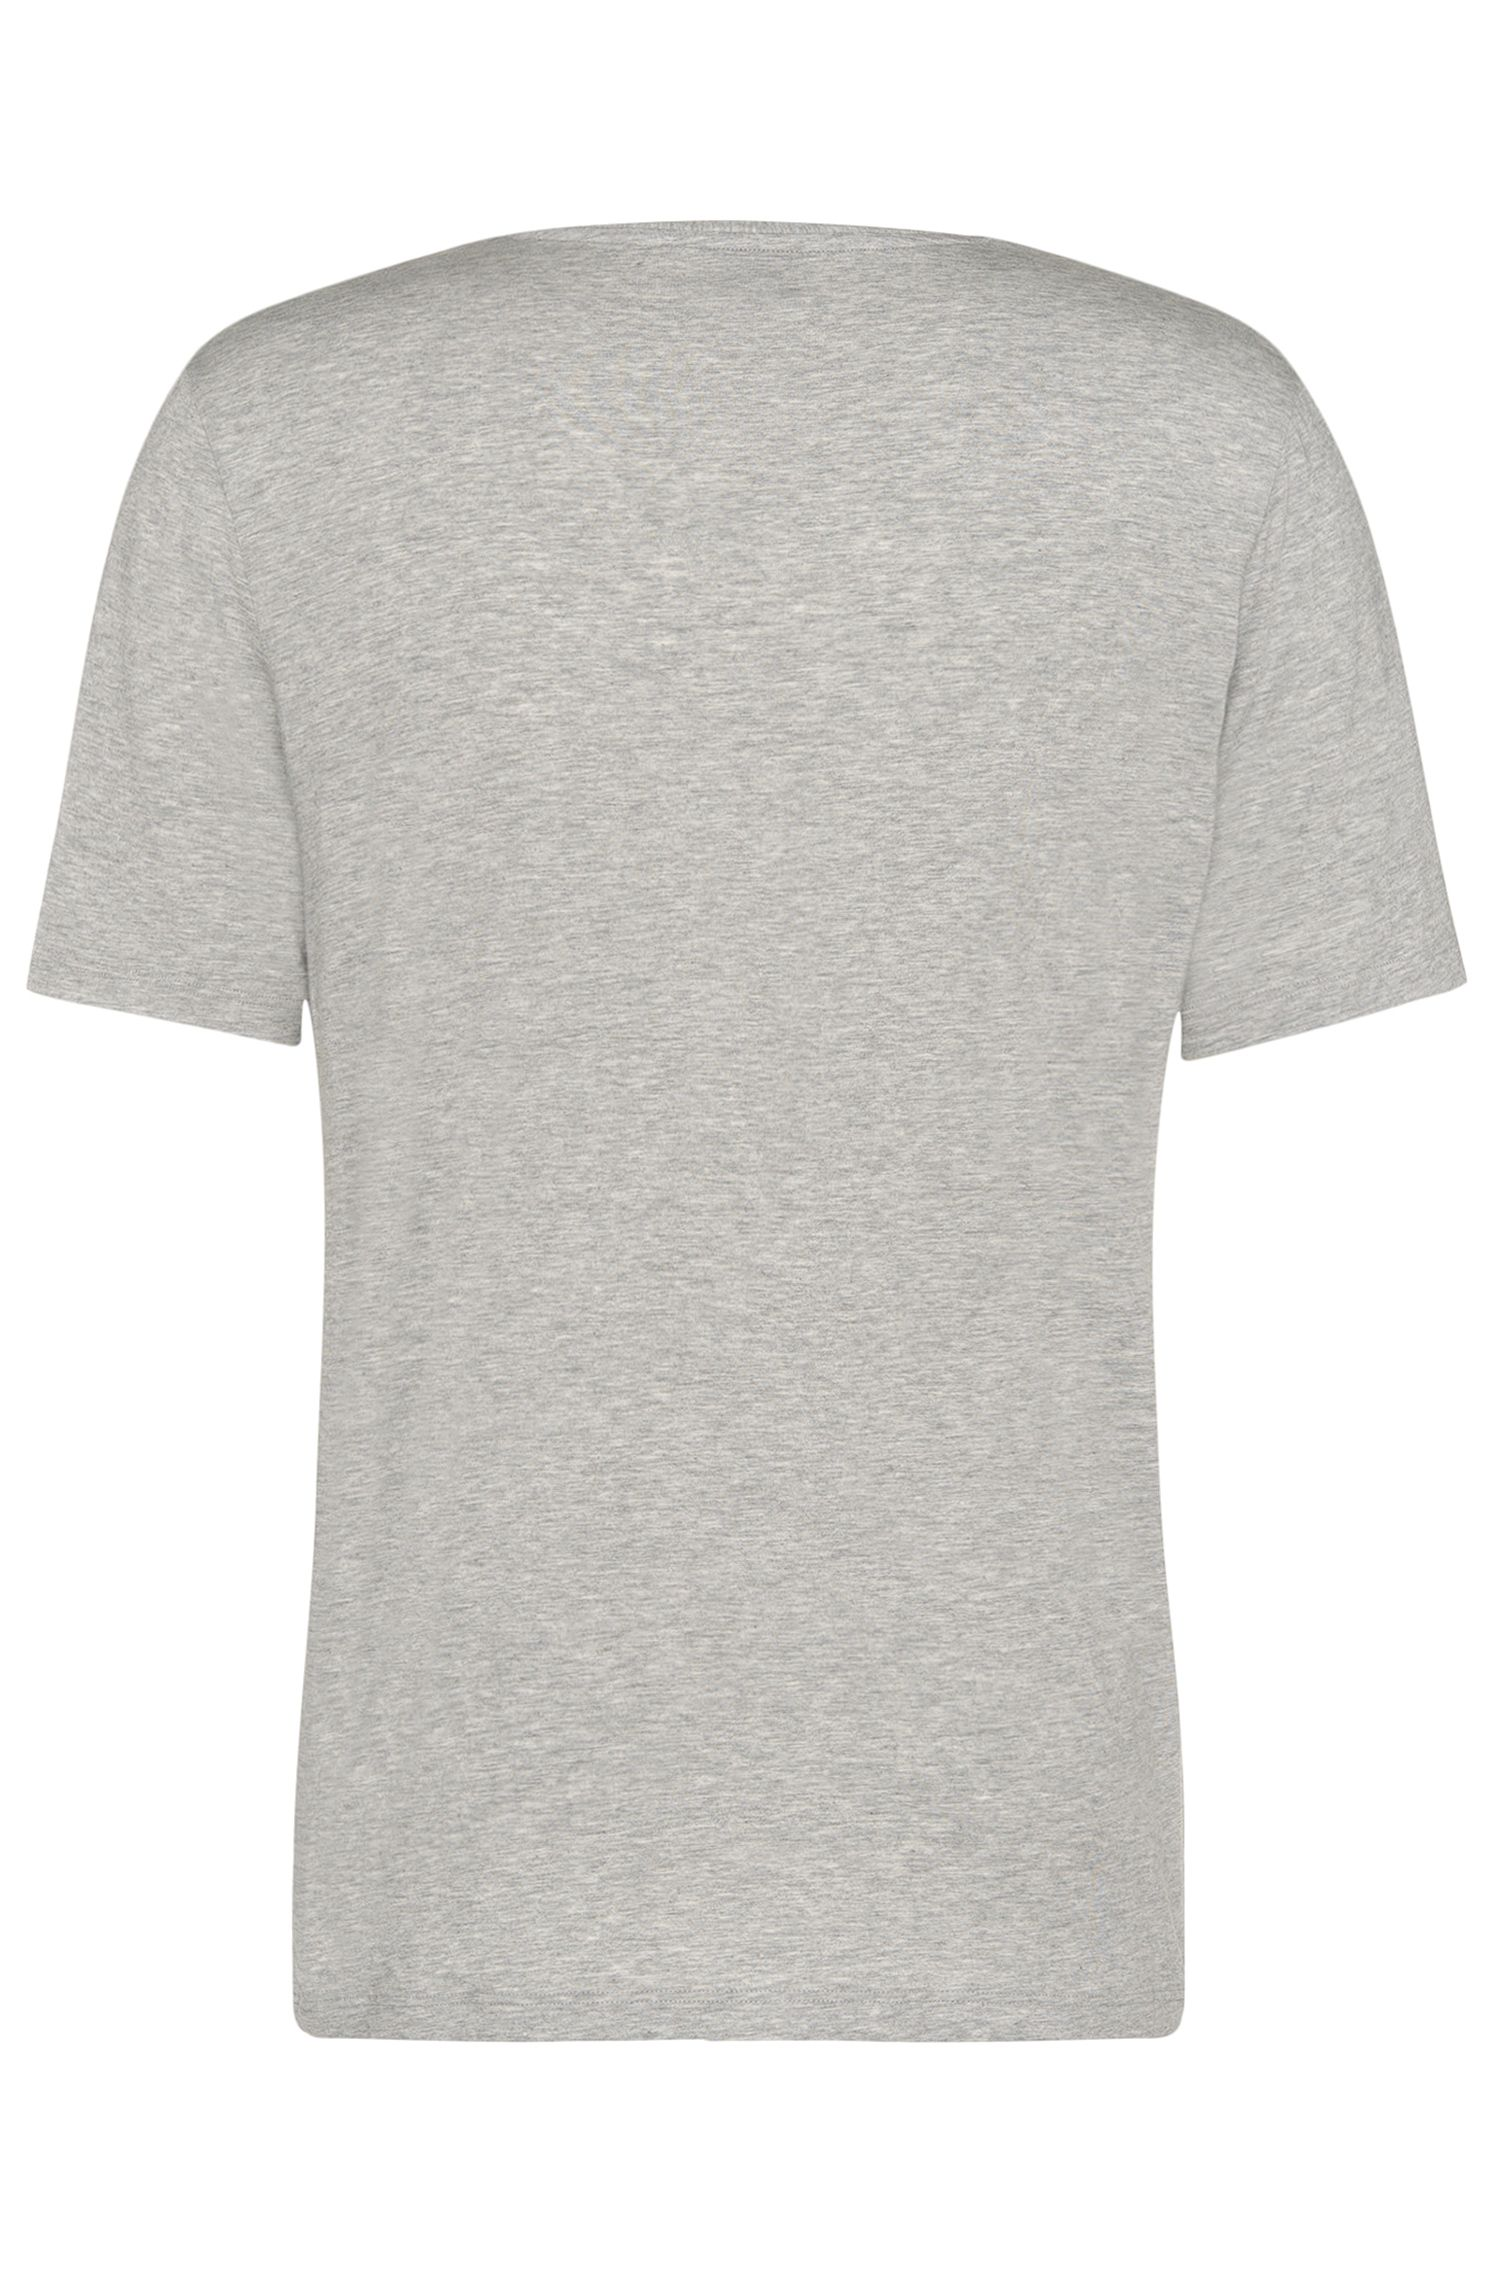 T-shirt regular fit in modal elasticizzato: 'Shirt VN', Grigio